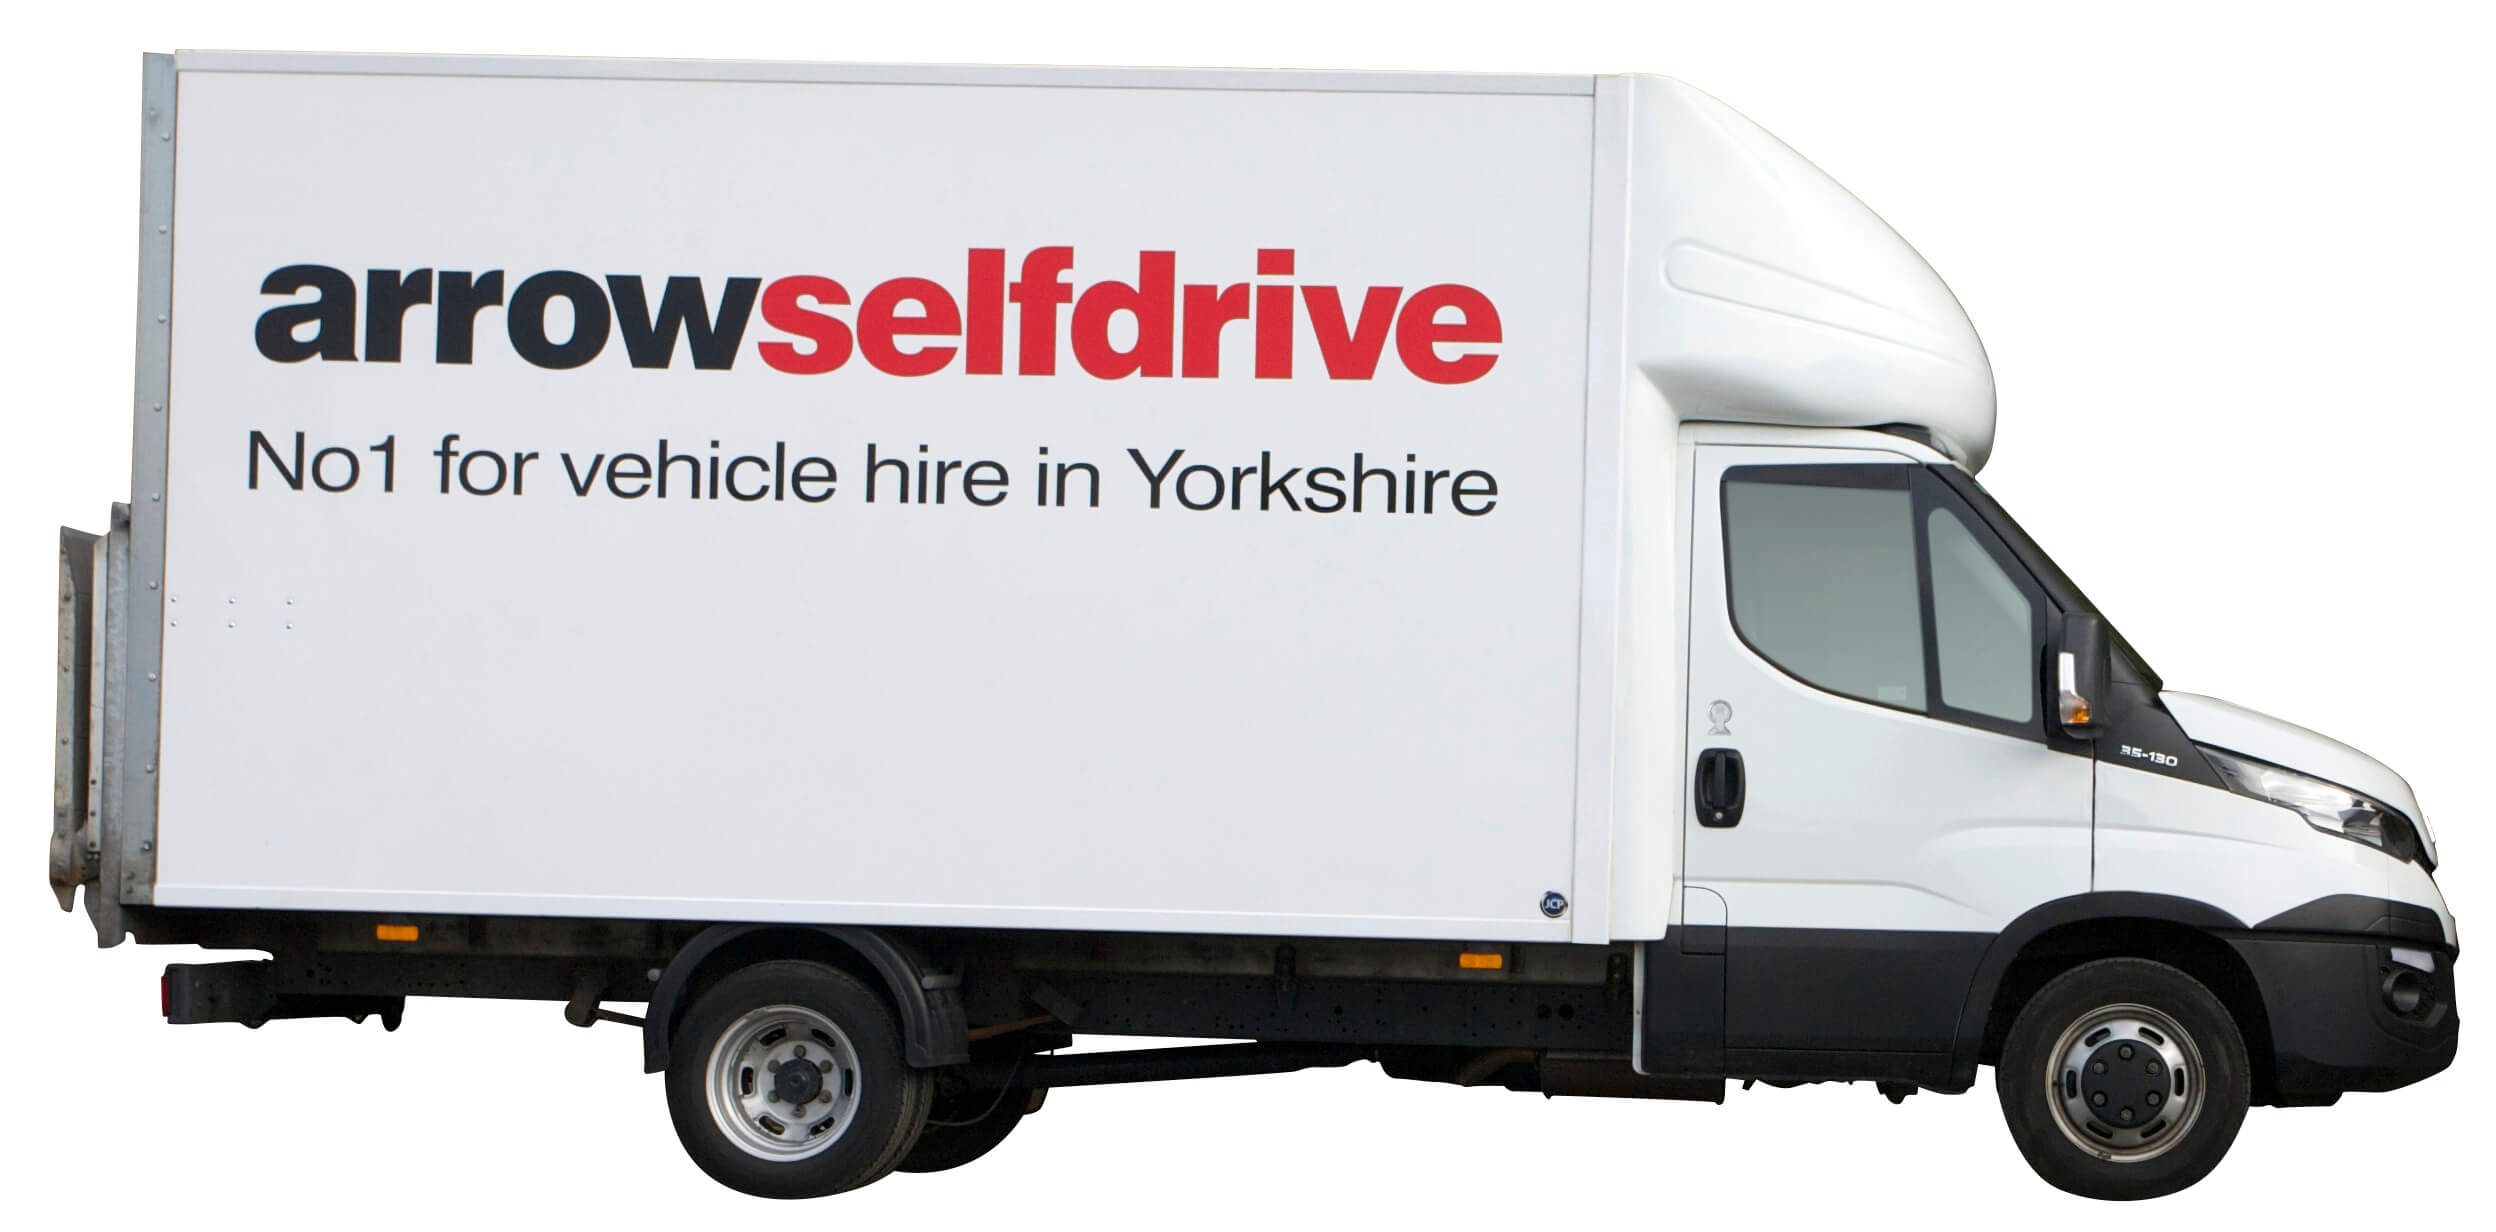 3 5 tonne luton van with taillift hire yorkshire arrow. Black Bedroom Furniture Sets. Home Design Ideas